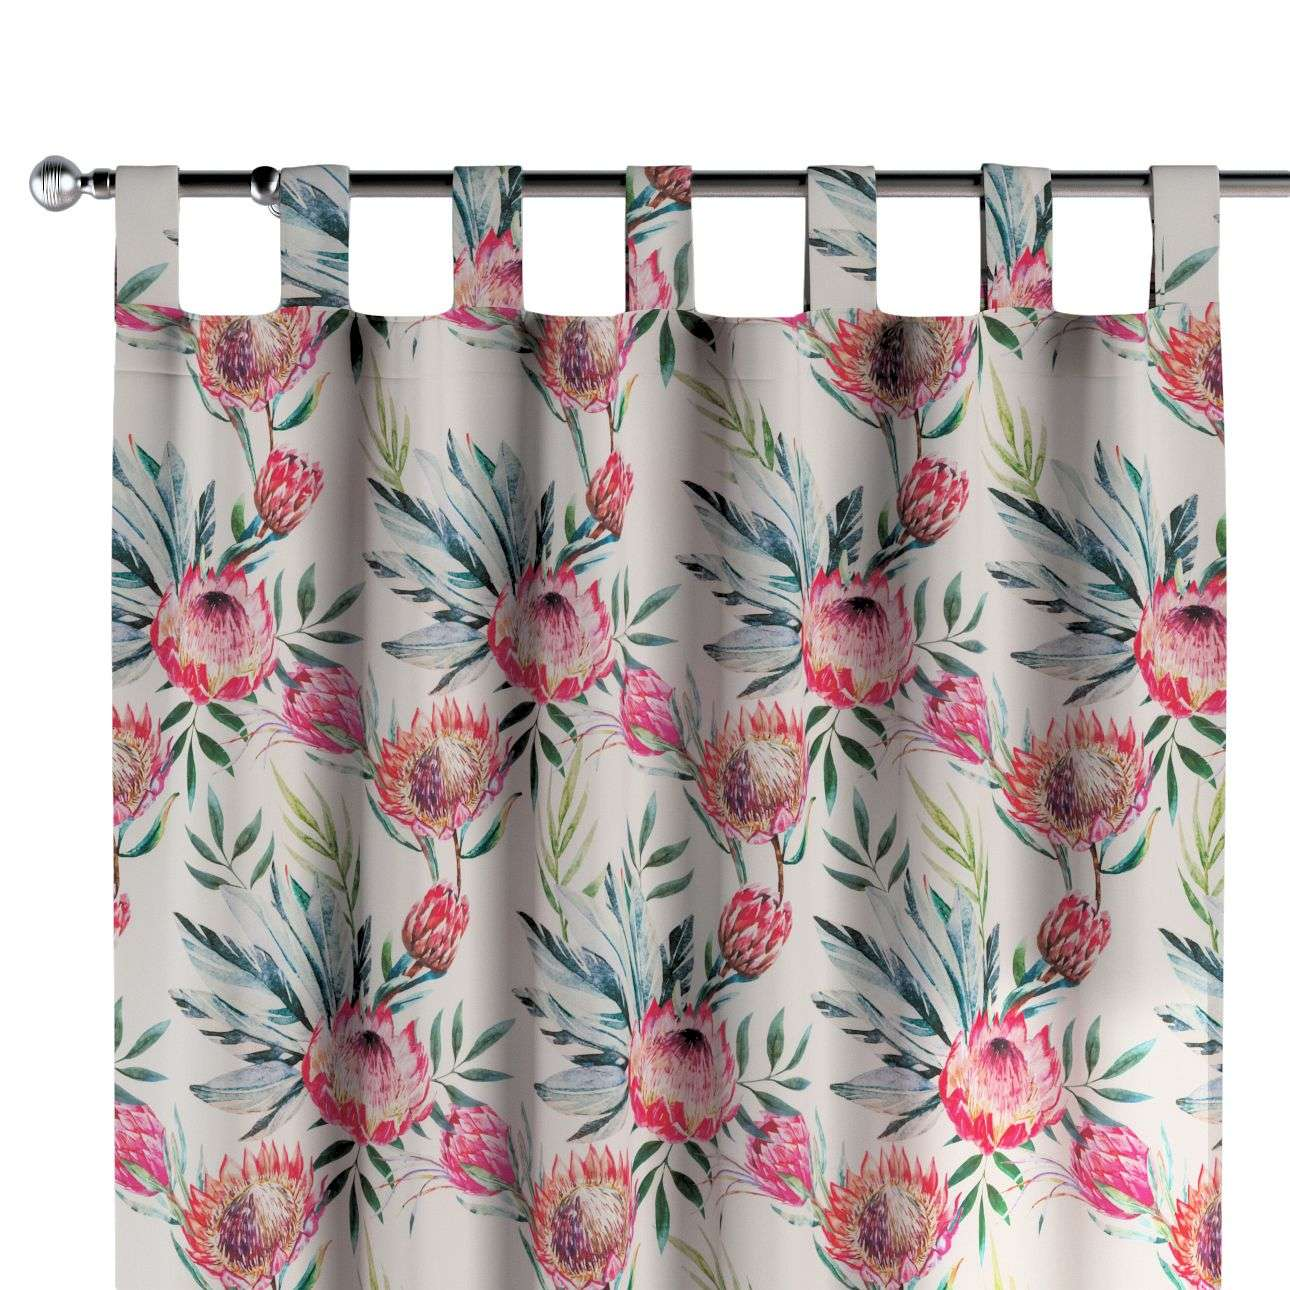 Tab top curtains 130 x 260 cm (51 x 102 inch) in collection New Art, fabric: 141-59